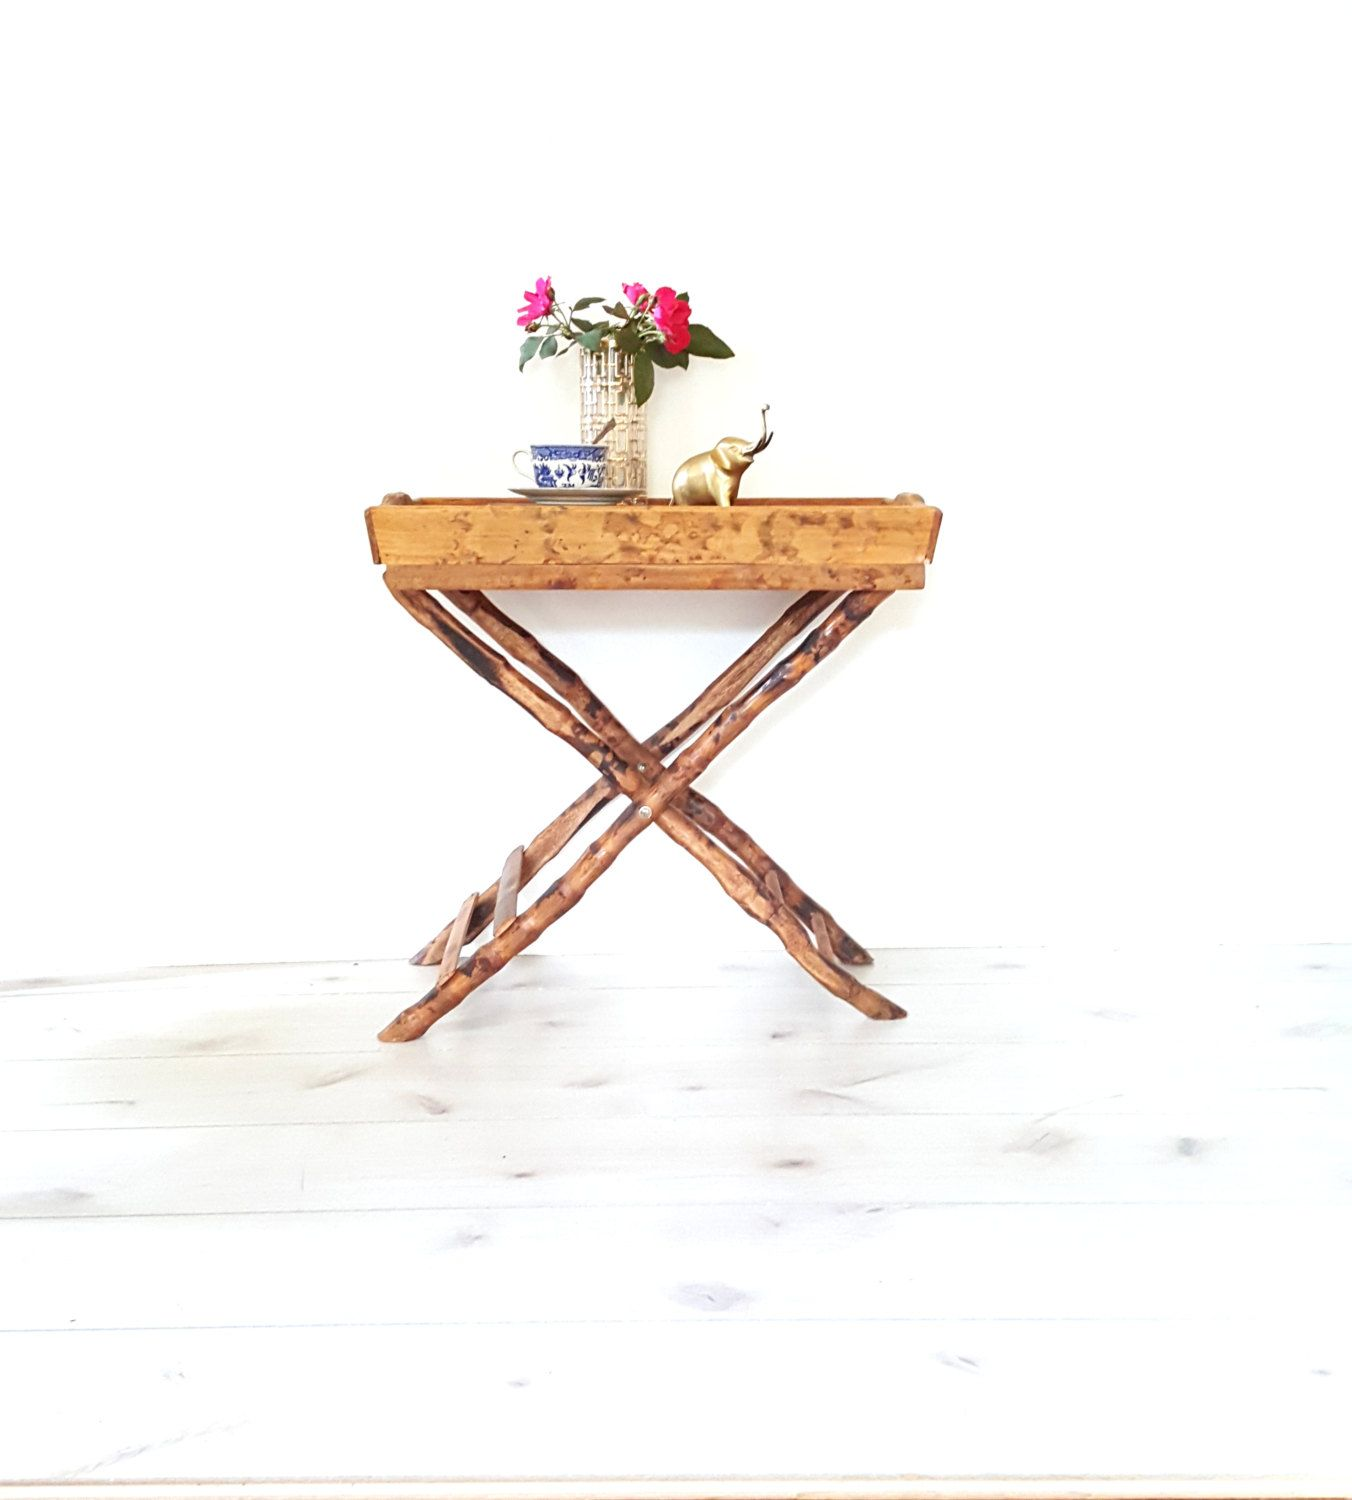 Vintage Bamboo  Wood Folding Tray Table   Bar Cart   Serving Tray by  LUCKYHOMEFINDS on. Vintage Bamboo  Wood Folding Tray Table   Bar Cart   Serving Tray